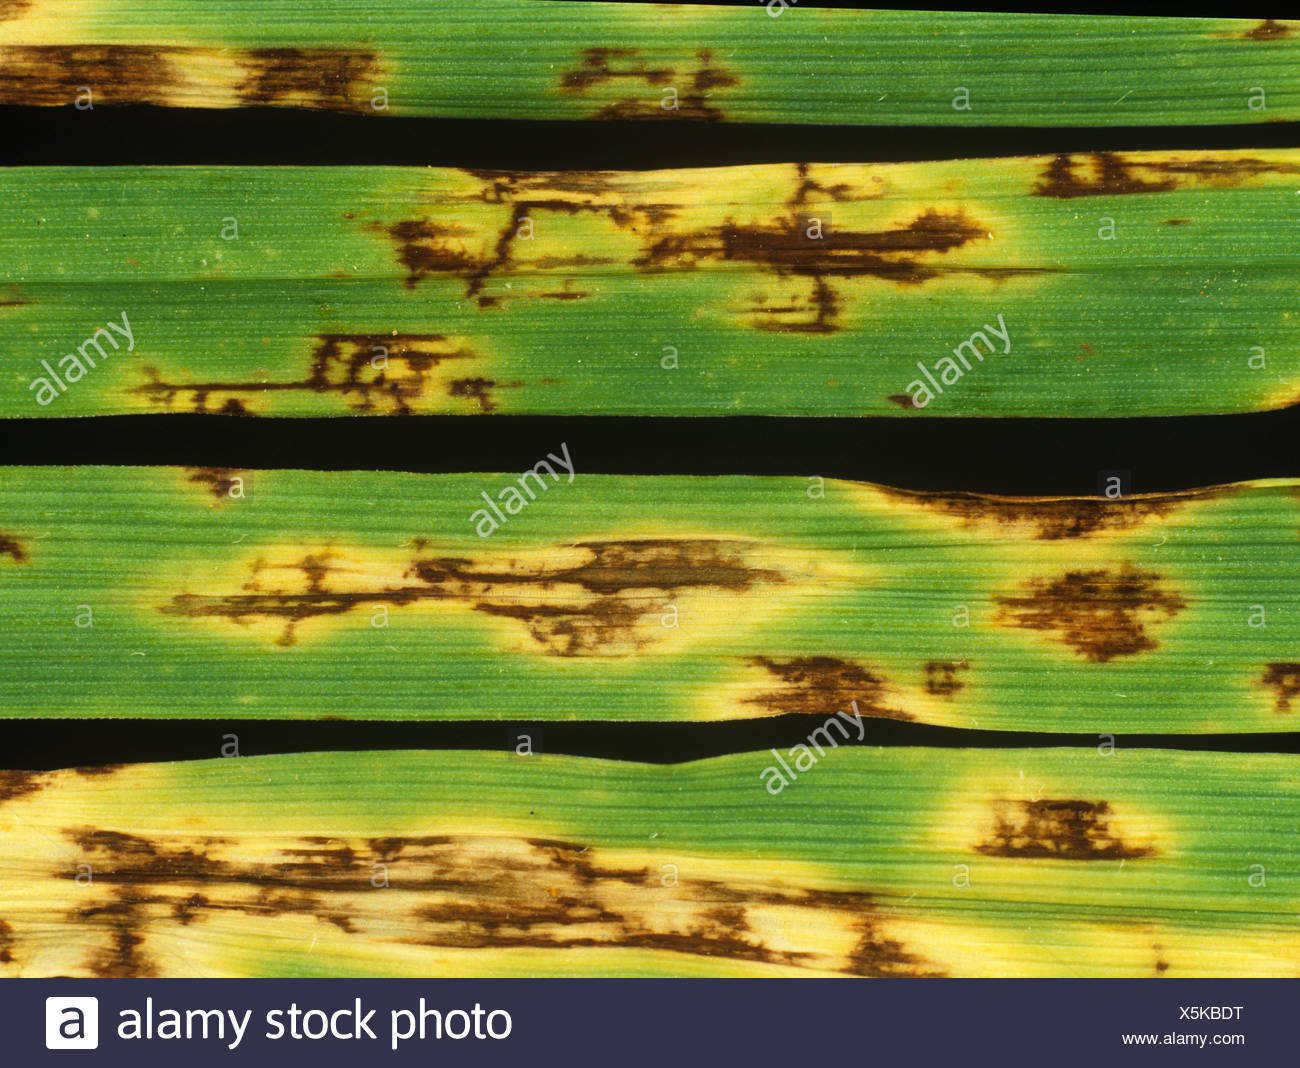 Net blotch Pyrenophora teres lesions on barley leaves - Stock Image